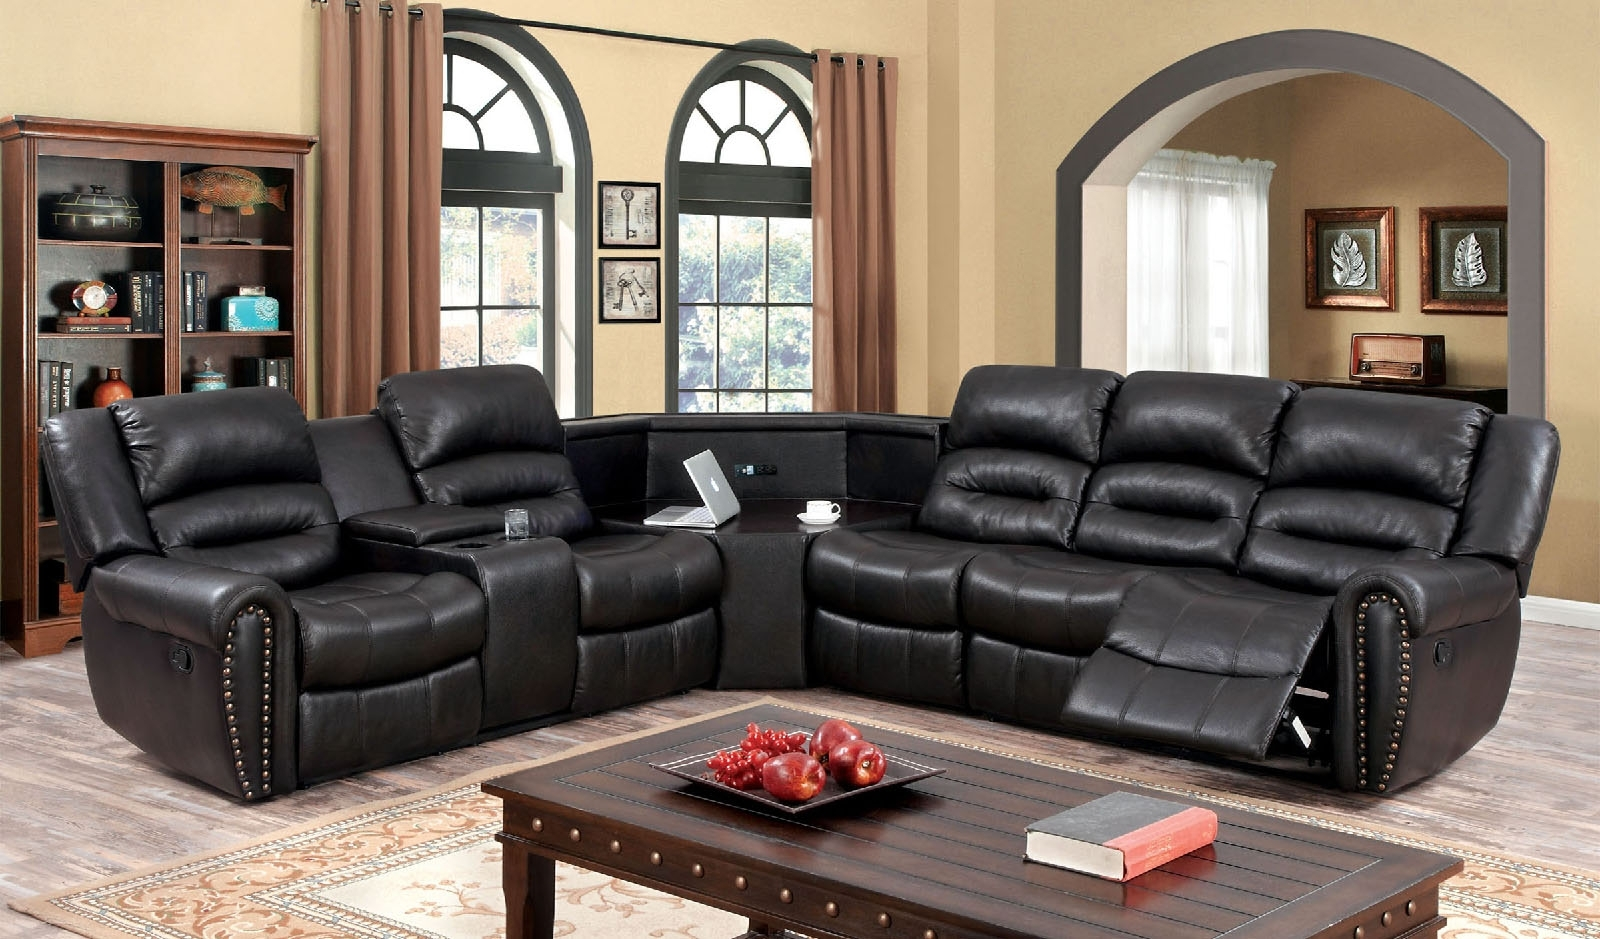 Great Black Sectional Sofa With Recliners 29 For High Quality With Quality Sectional Sofas (View 6 of 10)